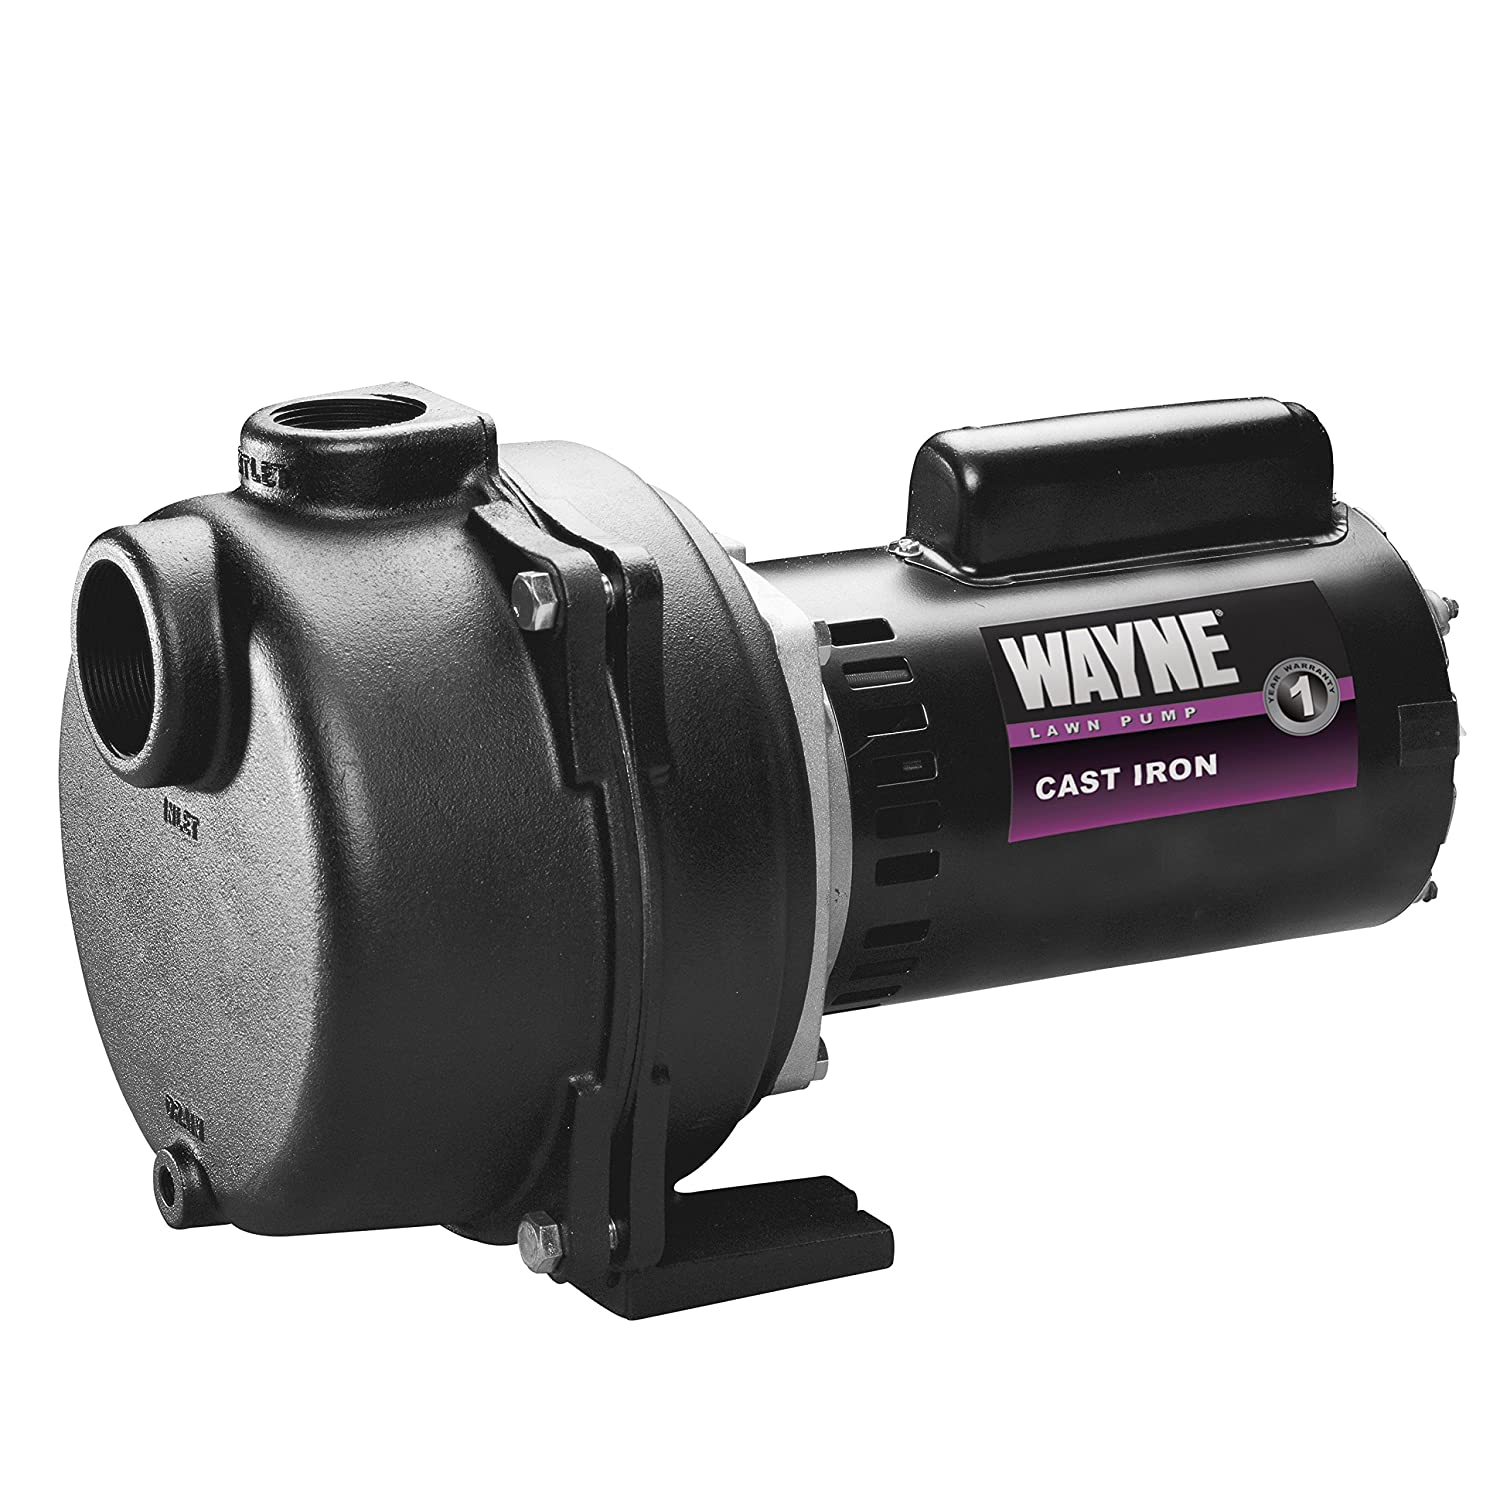 WAYNE WLS150 1.5 HP High Volume Cast Iron Lawn Sprinkling Pump